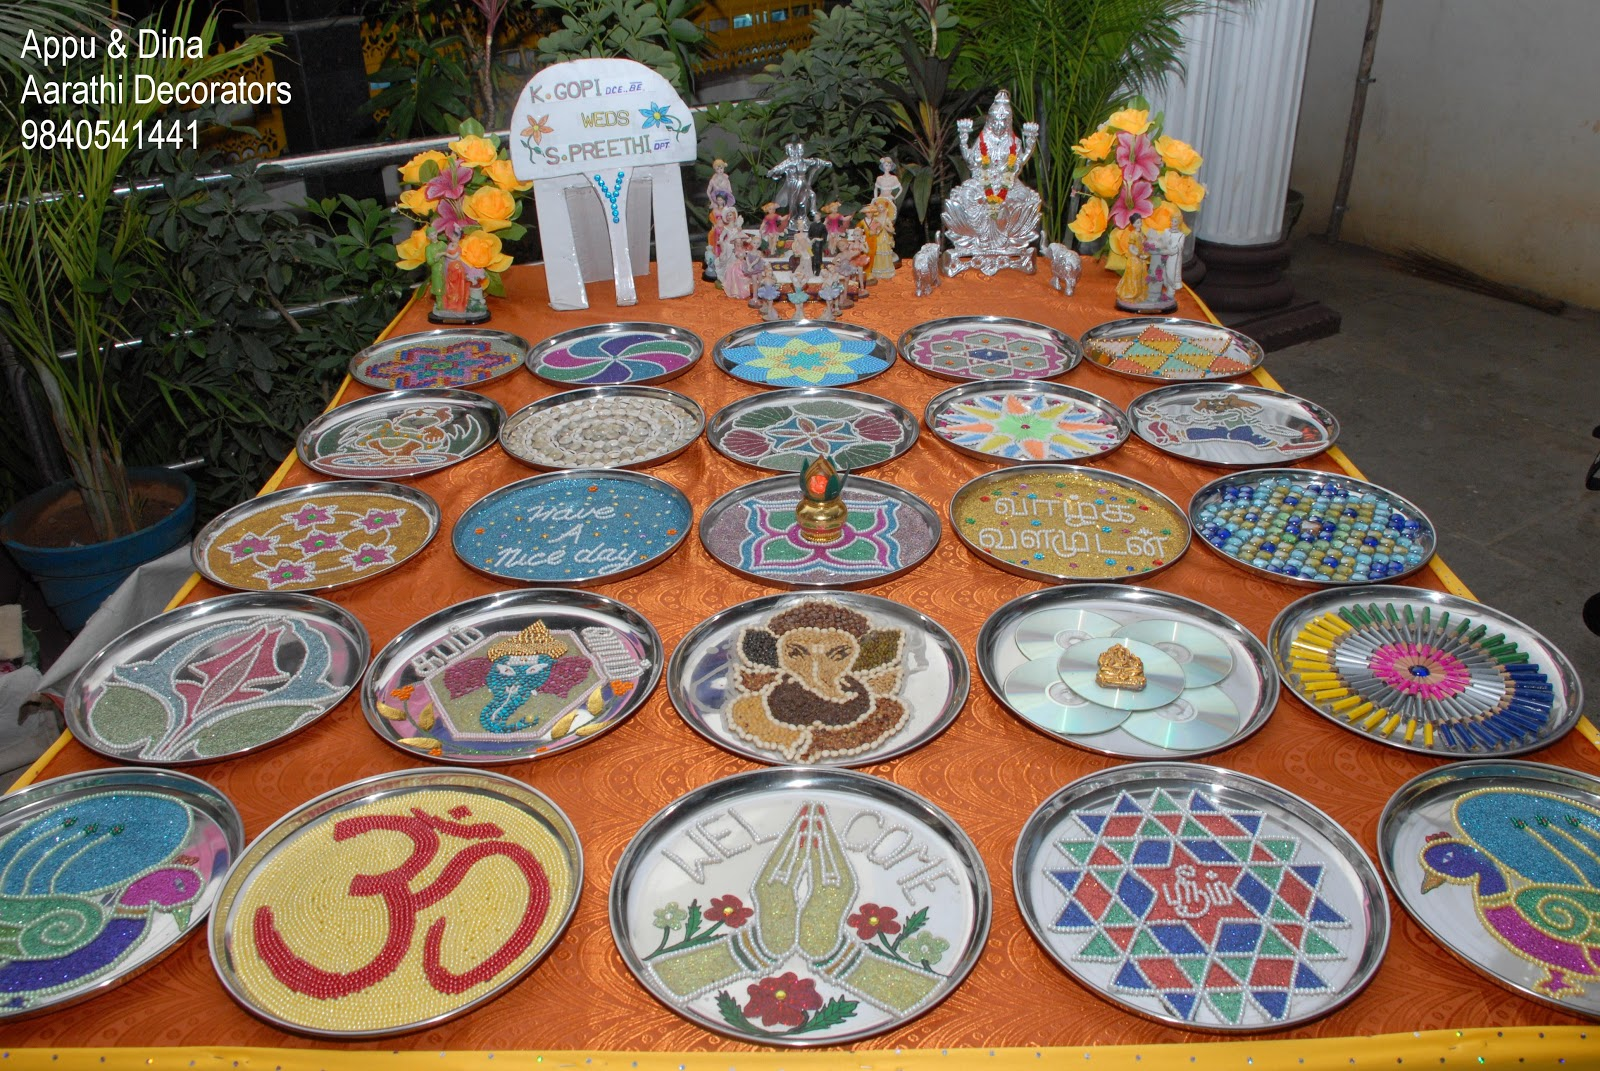 Ph no 9840541441 for Aarathi plates decoration